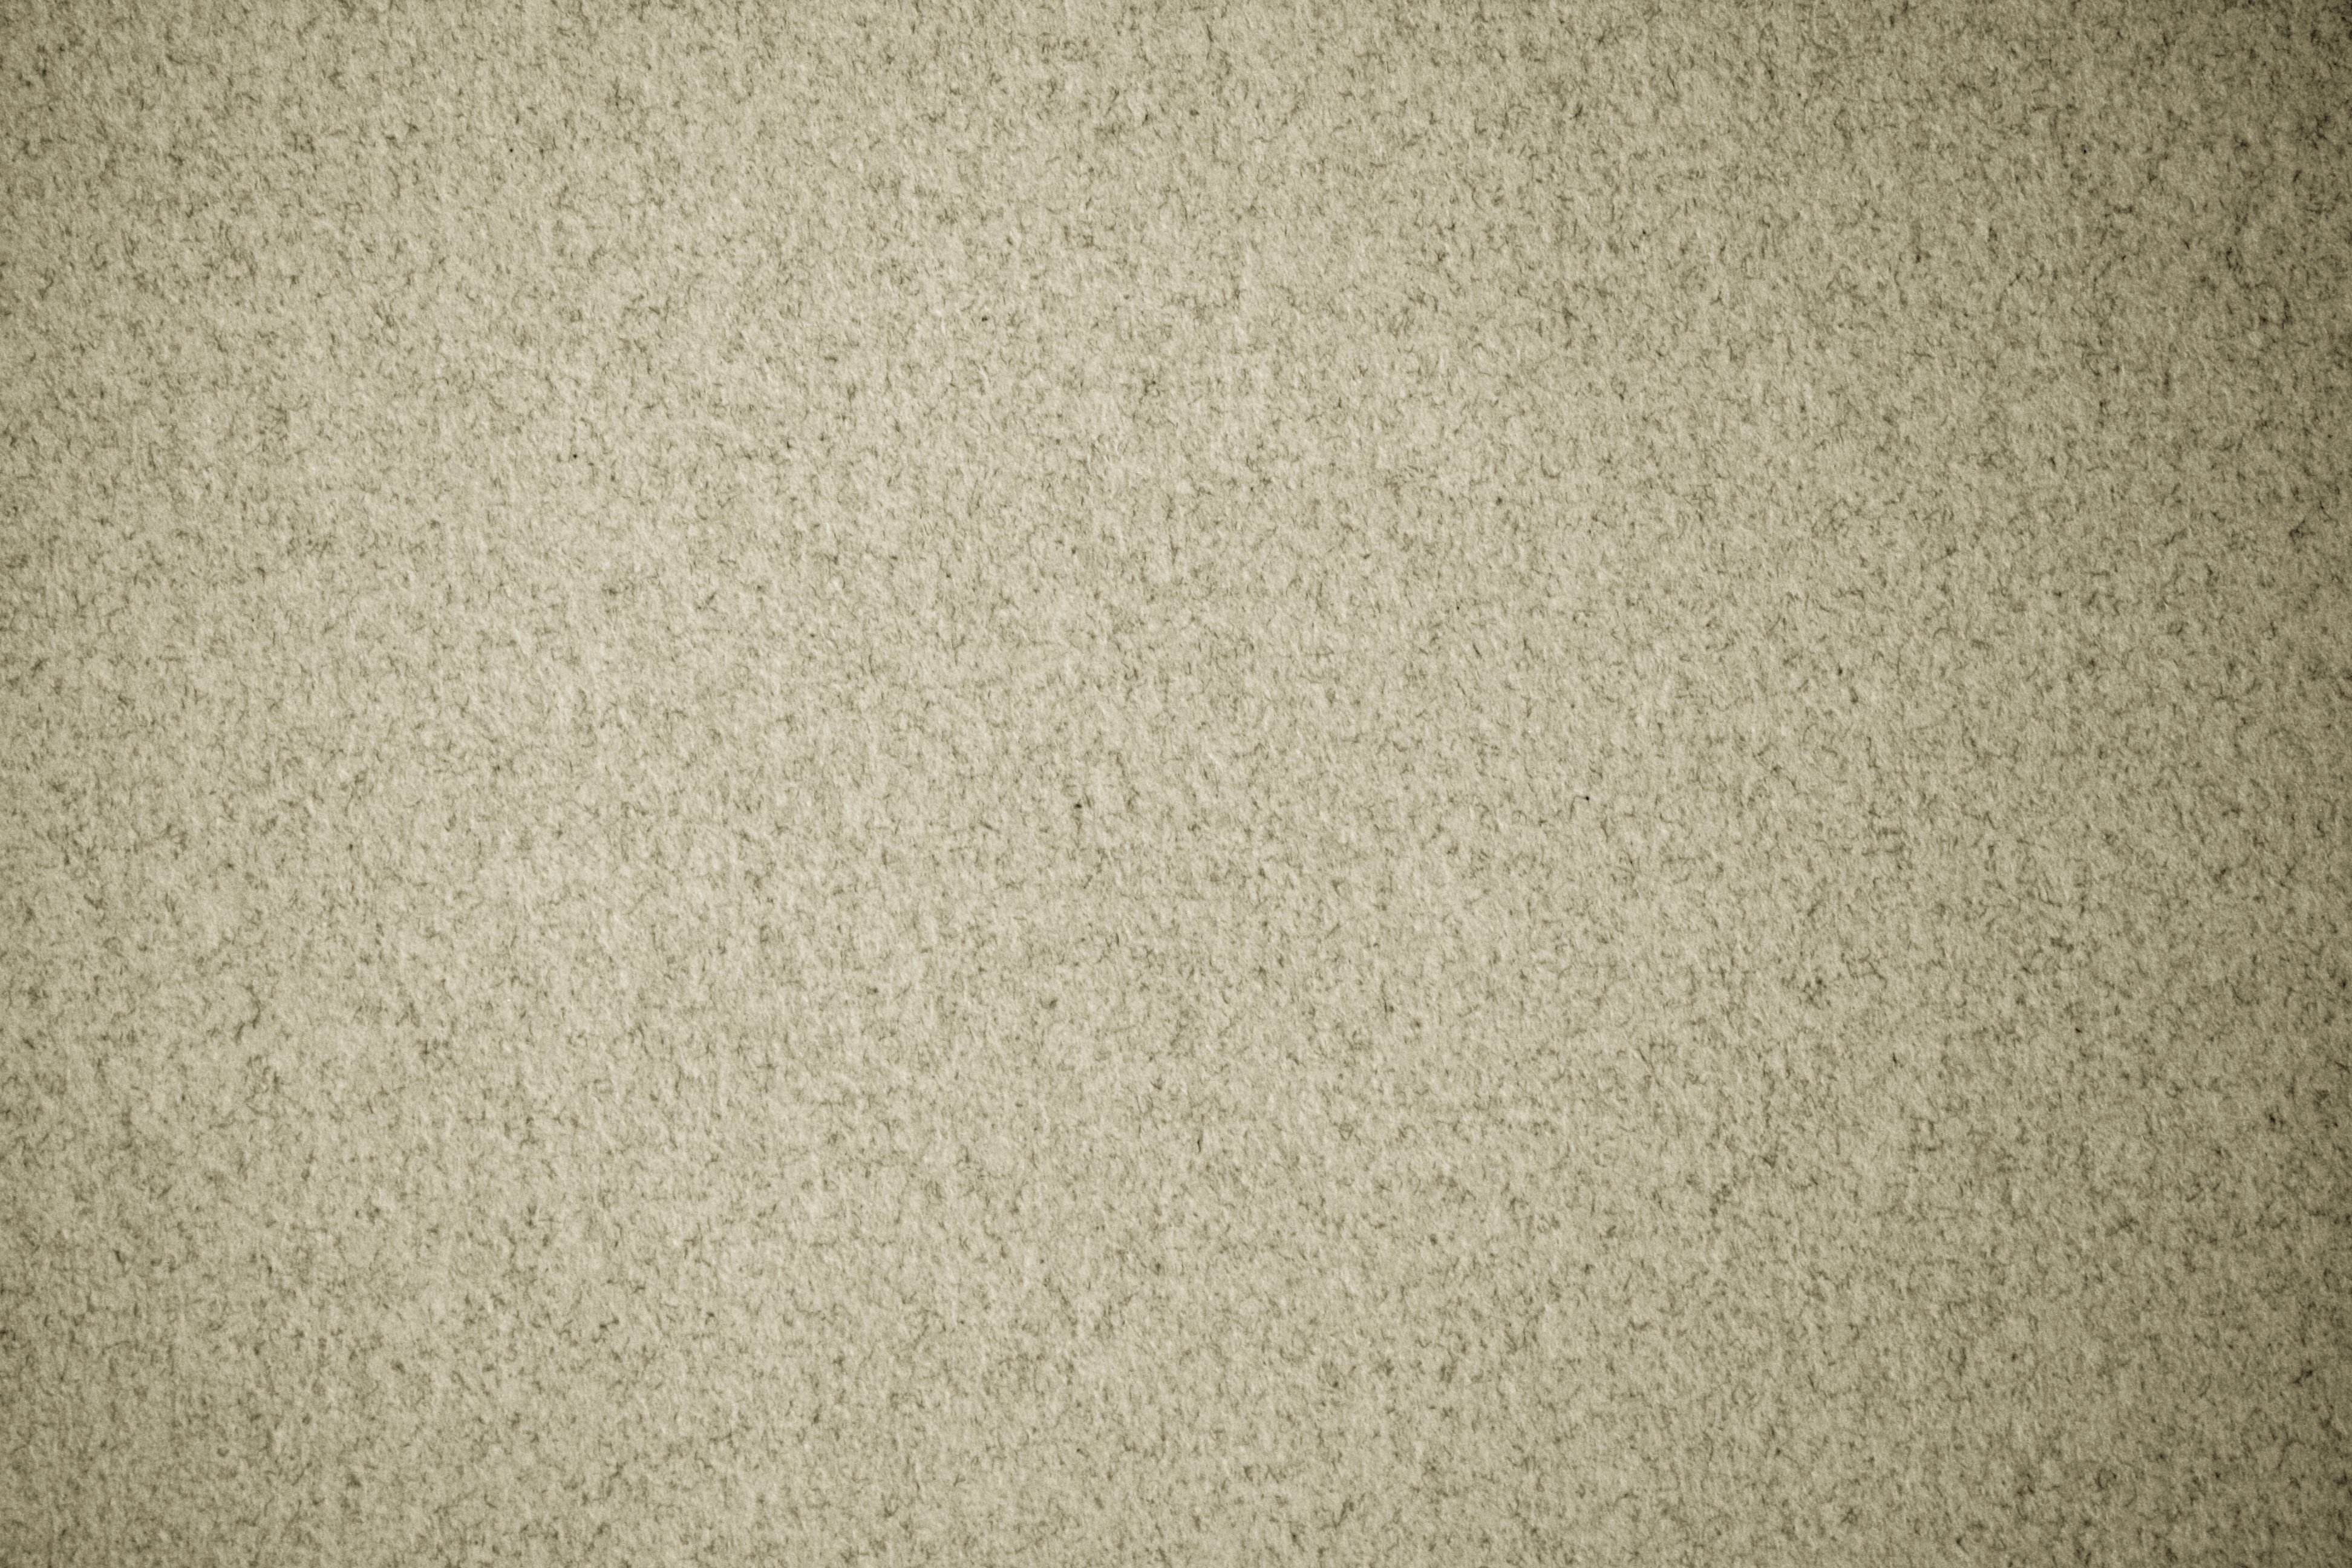 Wild textures free high resolution textures backgrounds and - Beige Speckled Paper Texture